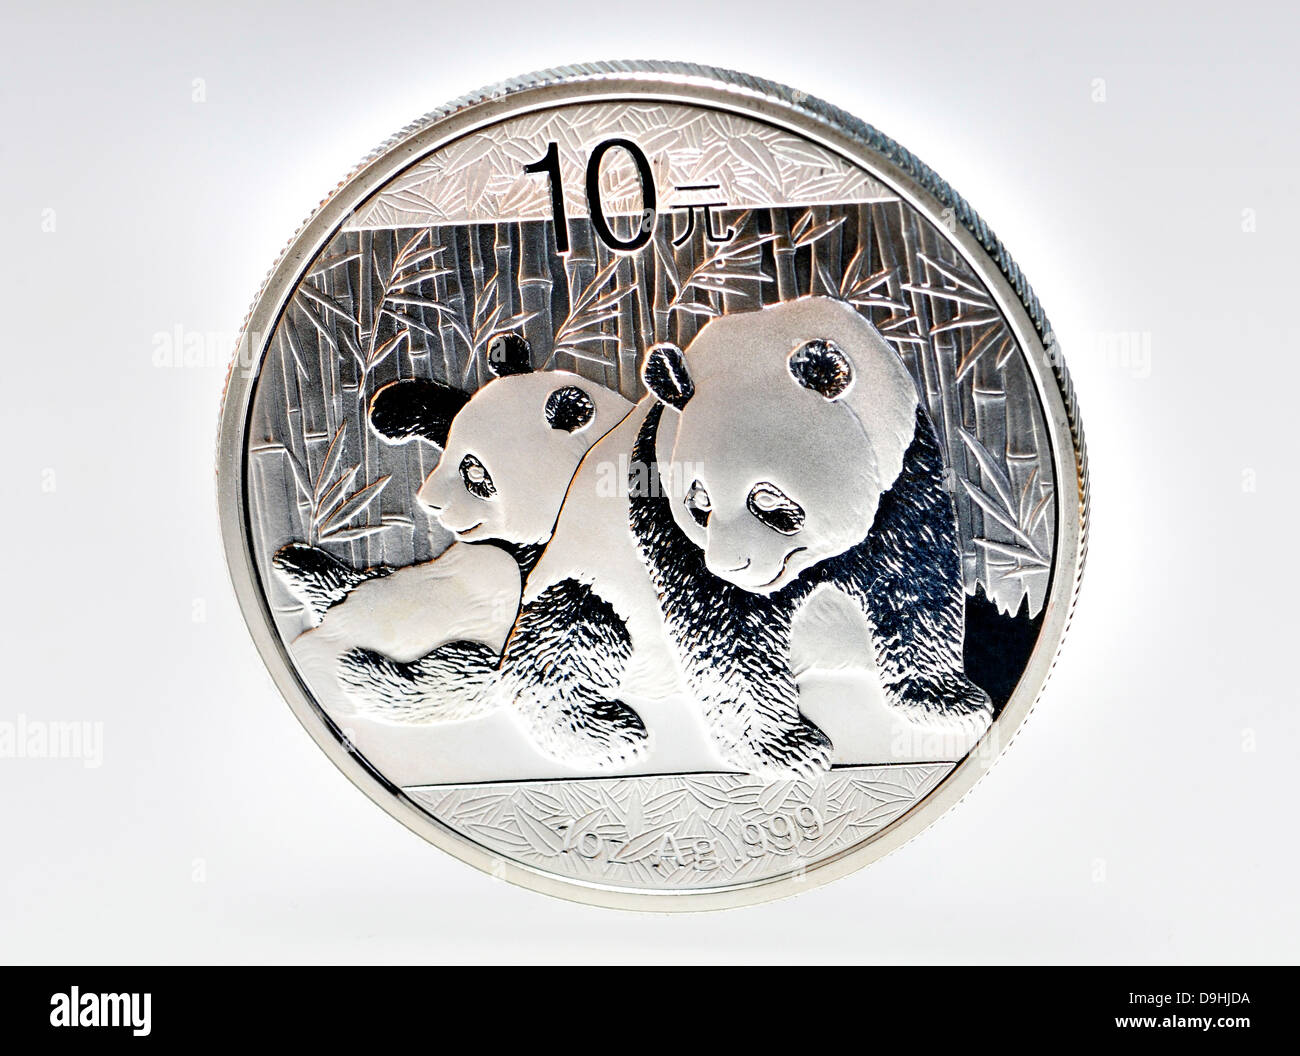 Silver coin - 1oz troy. - Stock Image